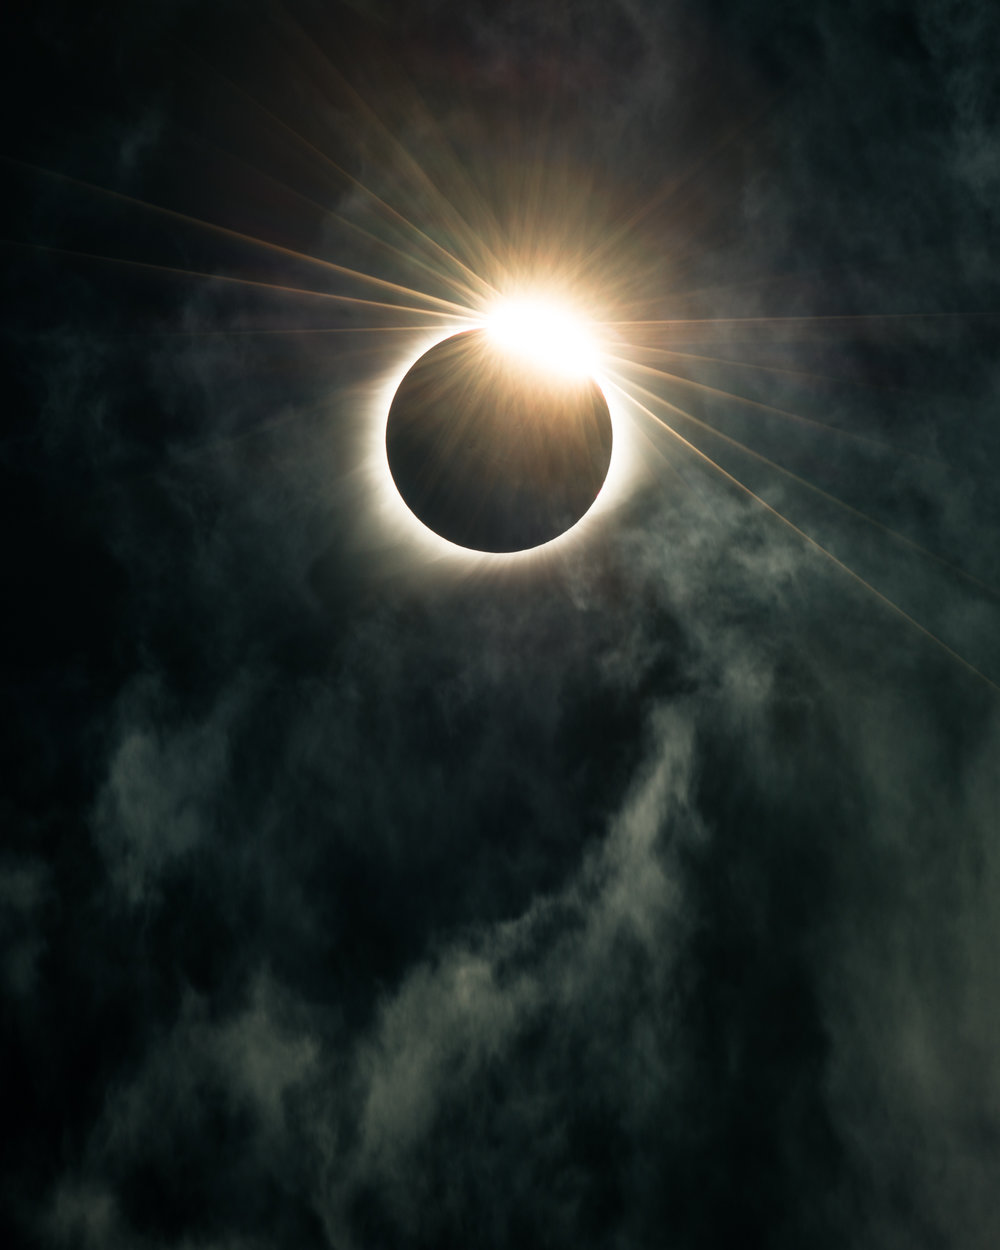 Eclipse_082117._CVB7693-Edit-3.jpg